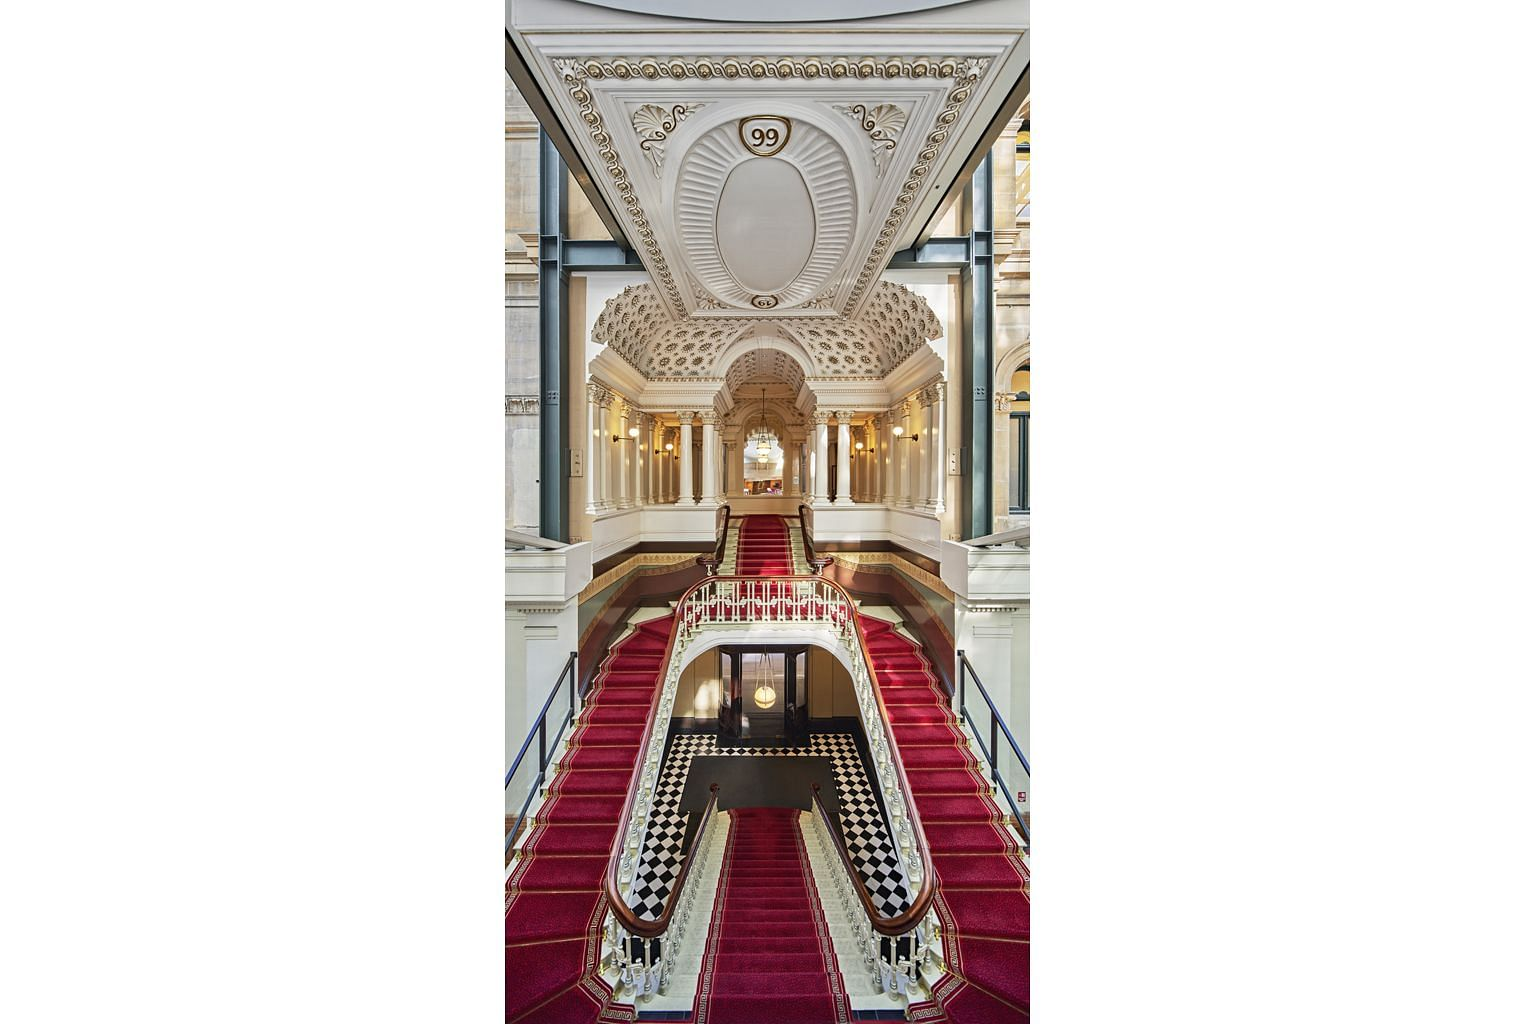 Sleek designs and luxurious suites are part of The Fullerton Hotel Sydney, which also has a grand staircase (above).